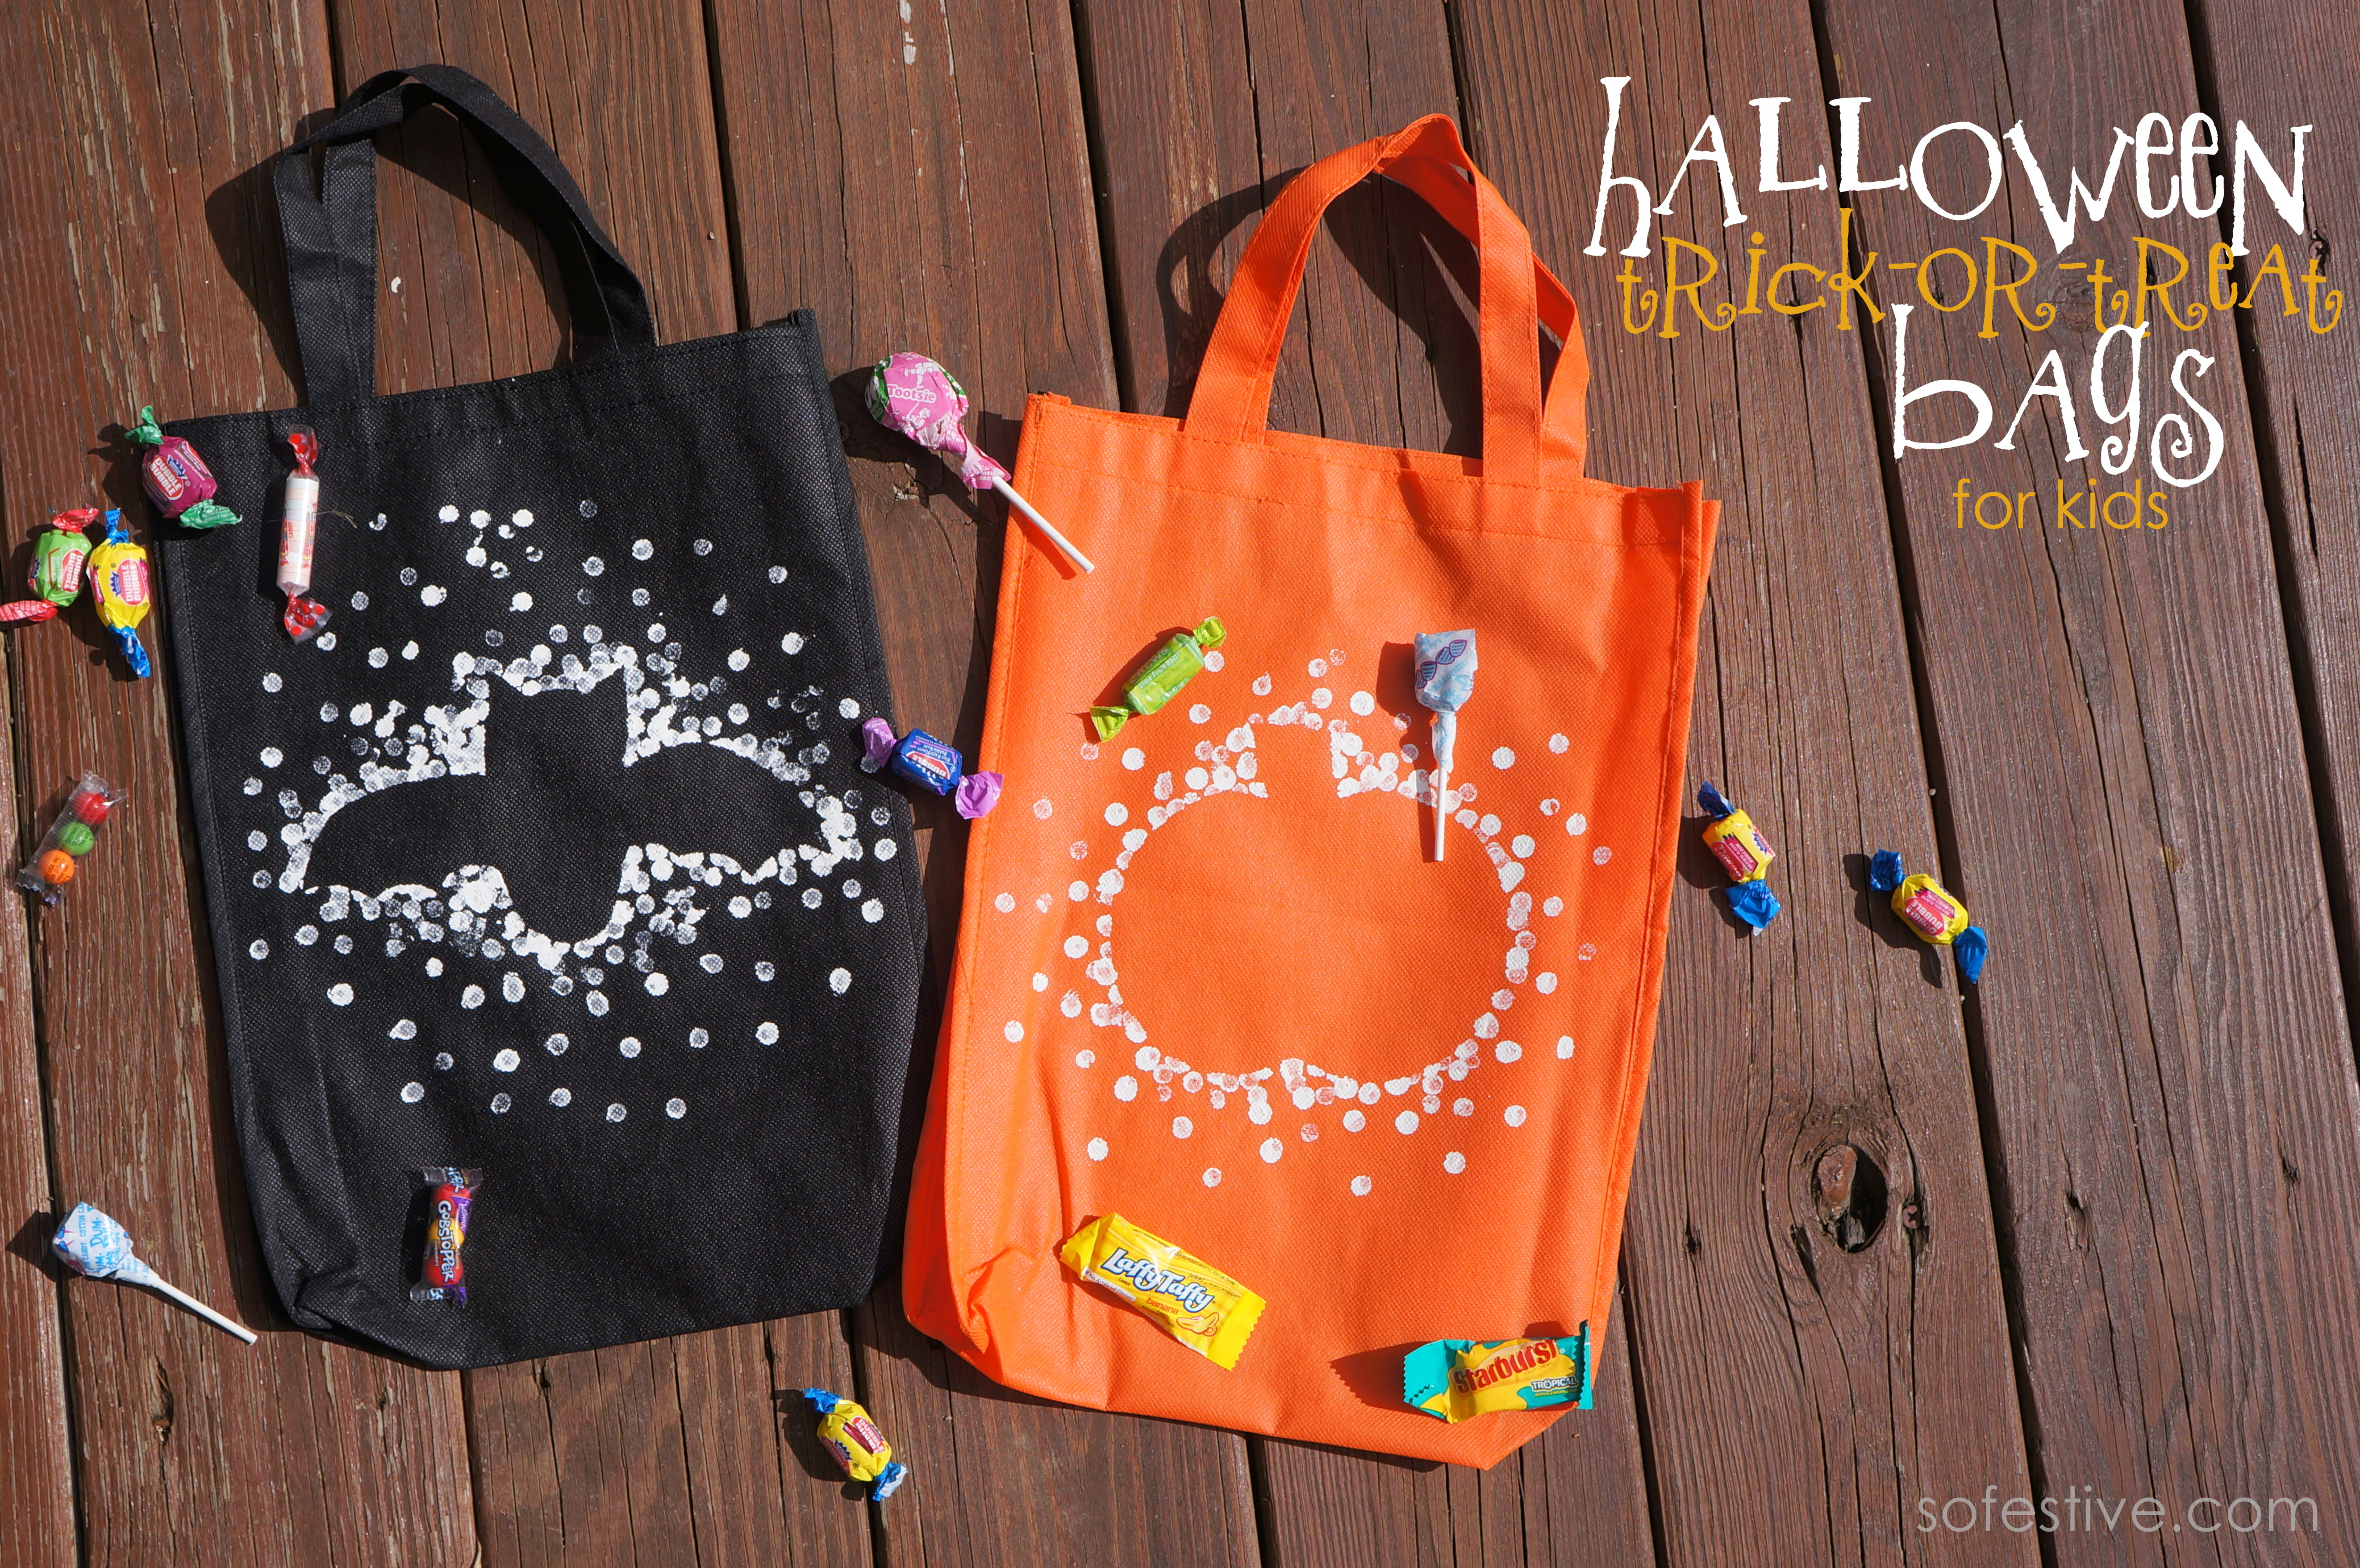 Halloween Trick-or-Treat Bags For Kids